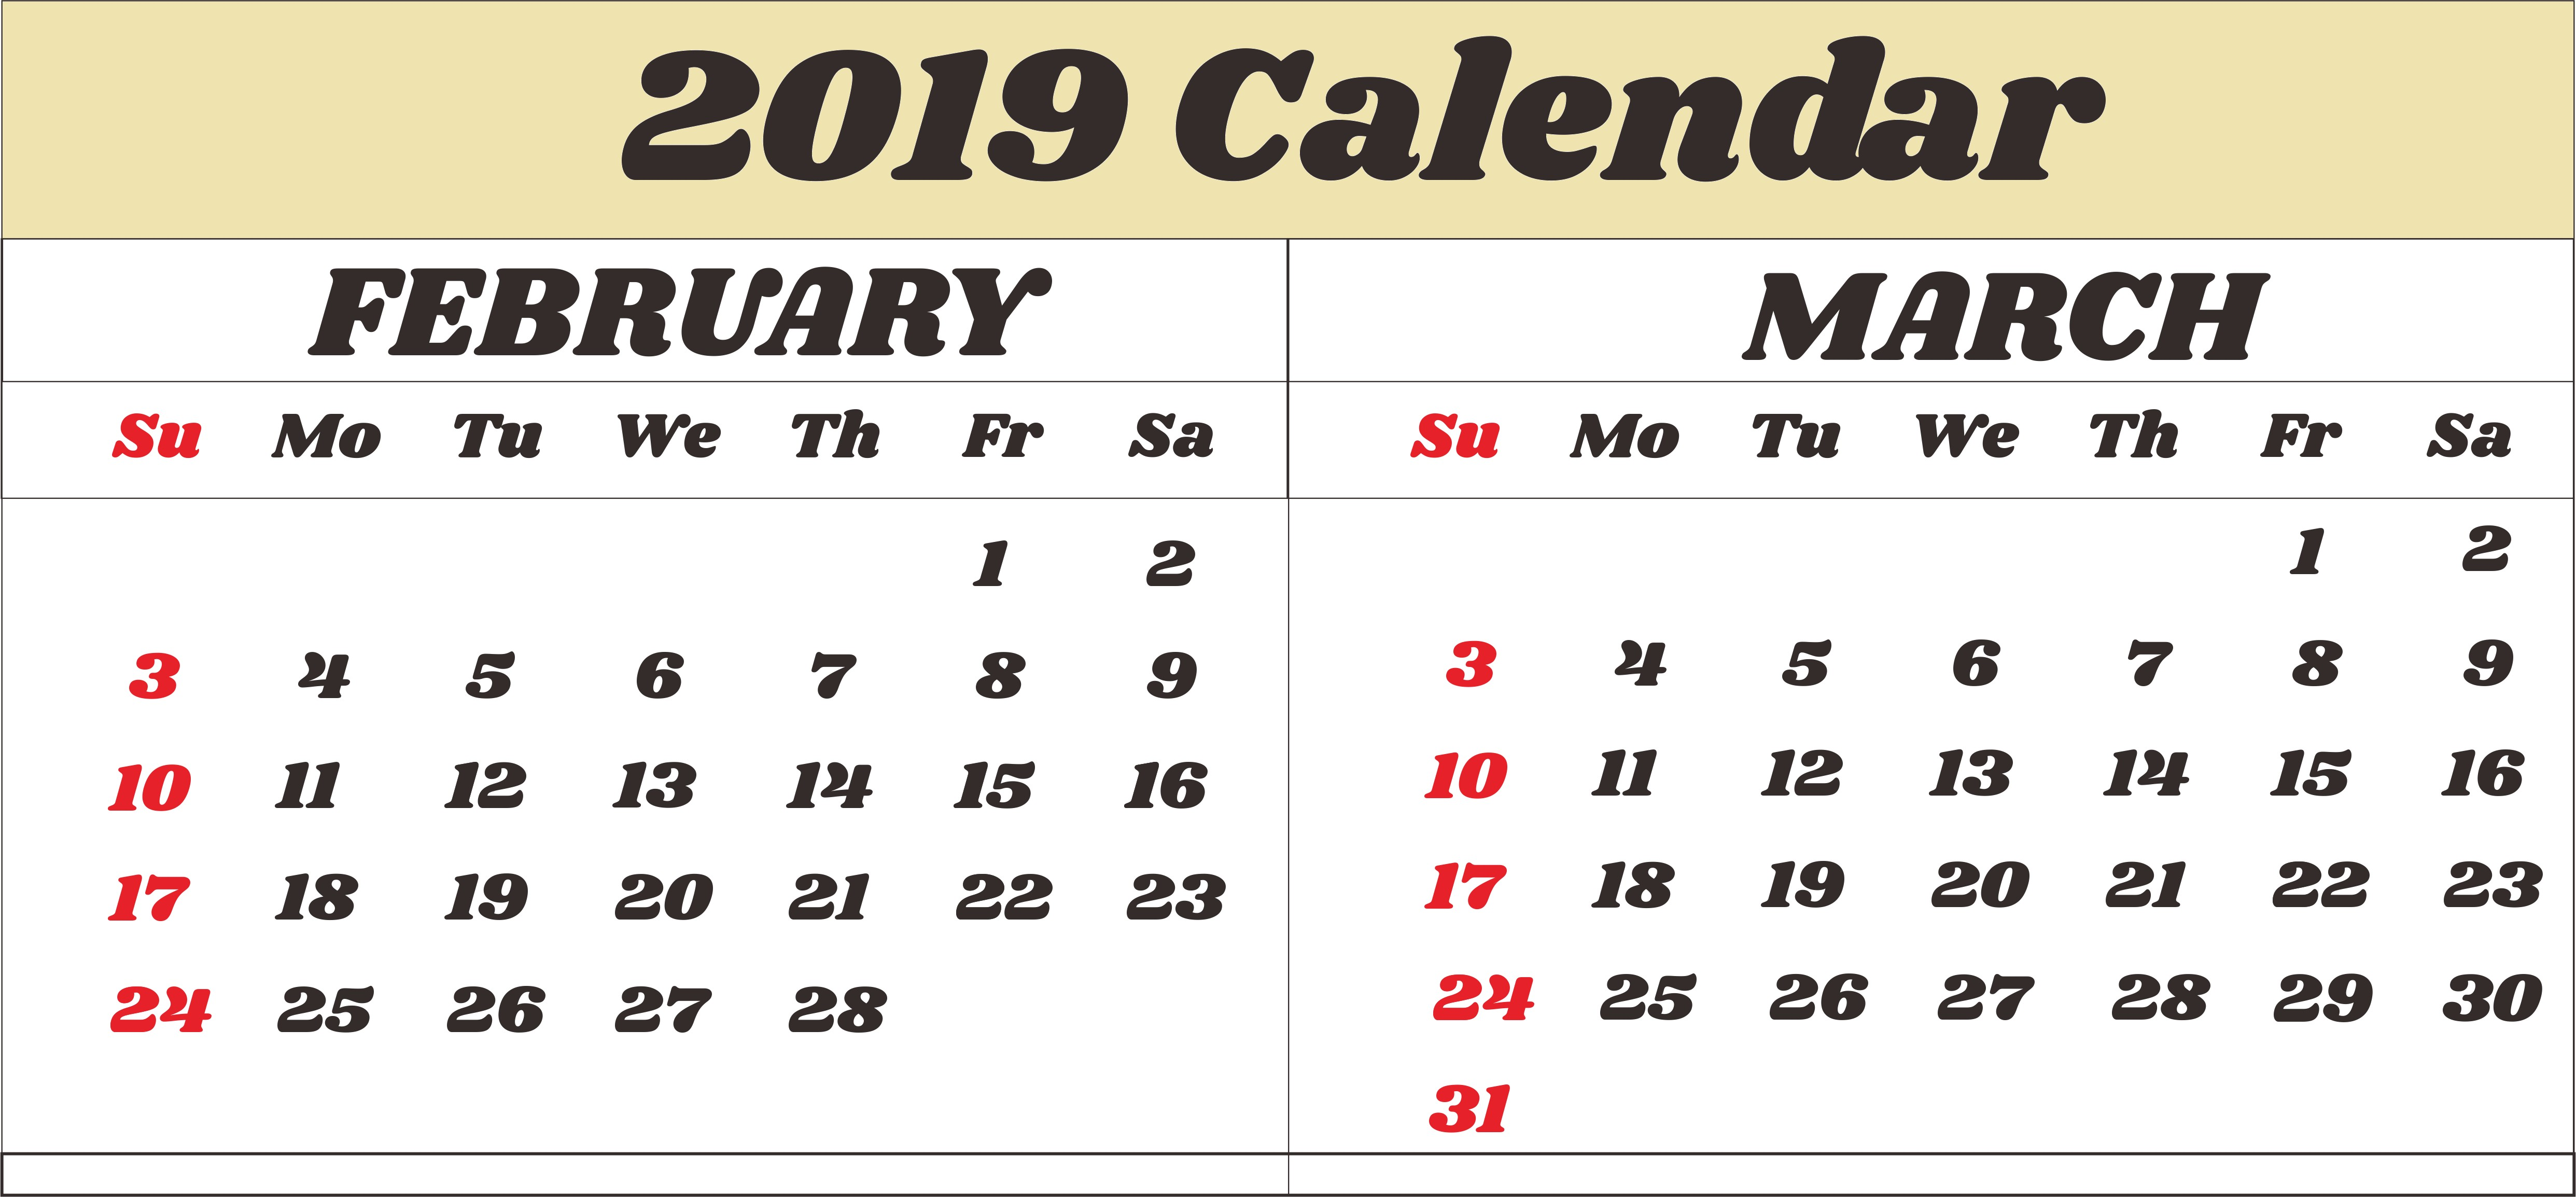 March Calendar 2019 Más Recientes February Calendar 2019 Printable Notes and to Do List Of March Calendar 2019 Más Populares February March Calendar 2019 2018 Printable Calendar Store